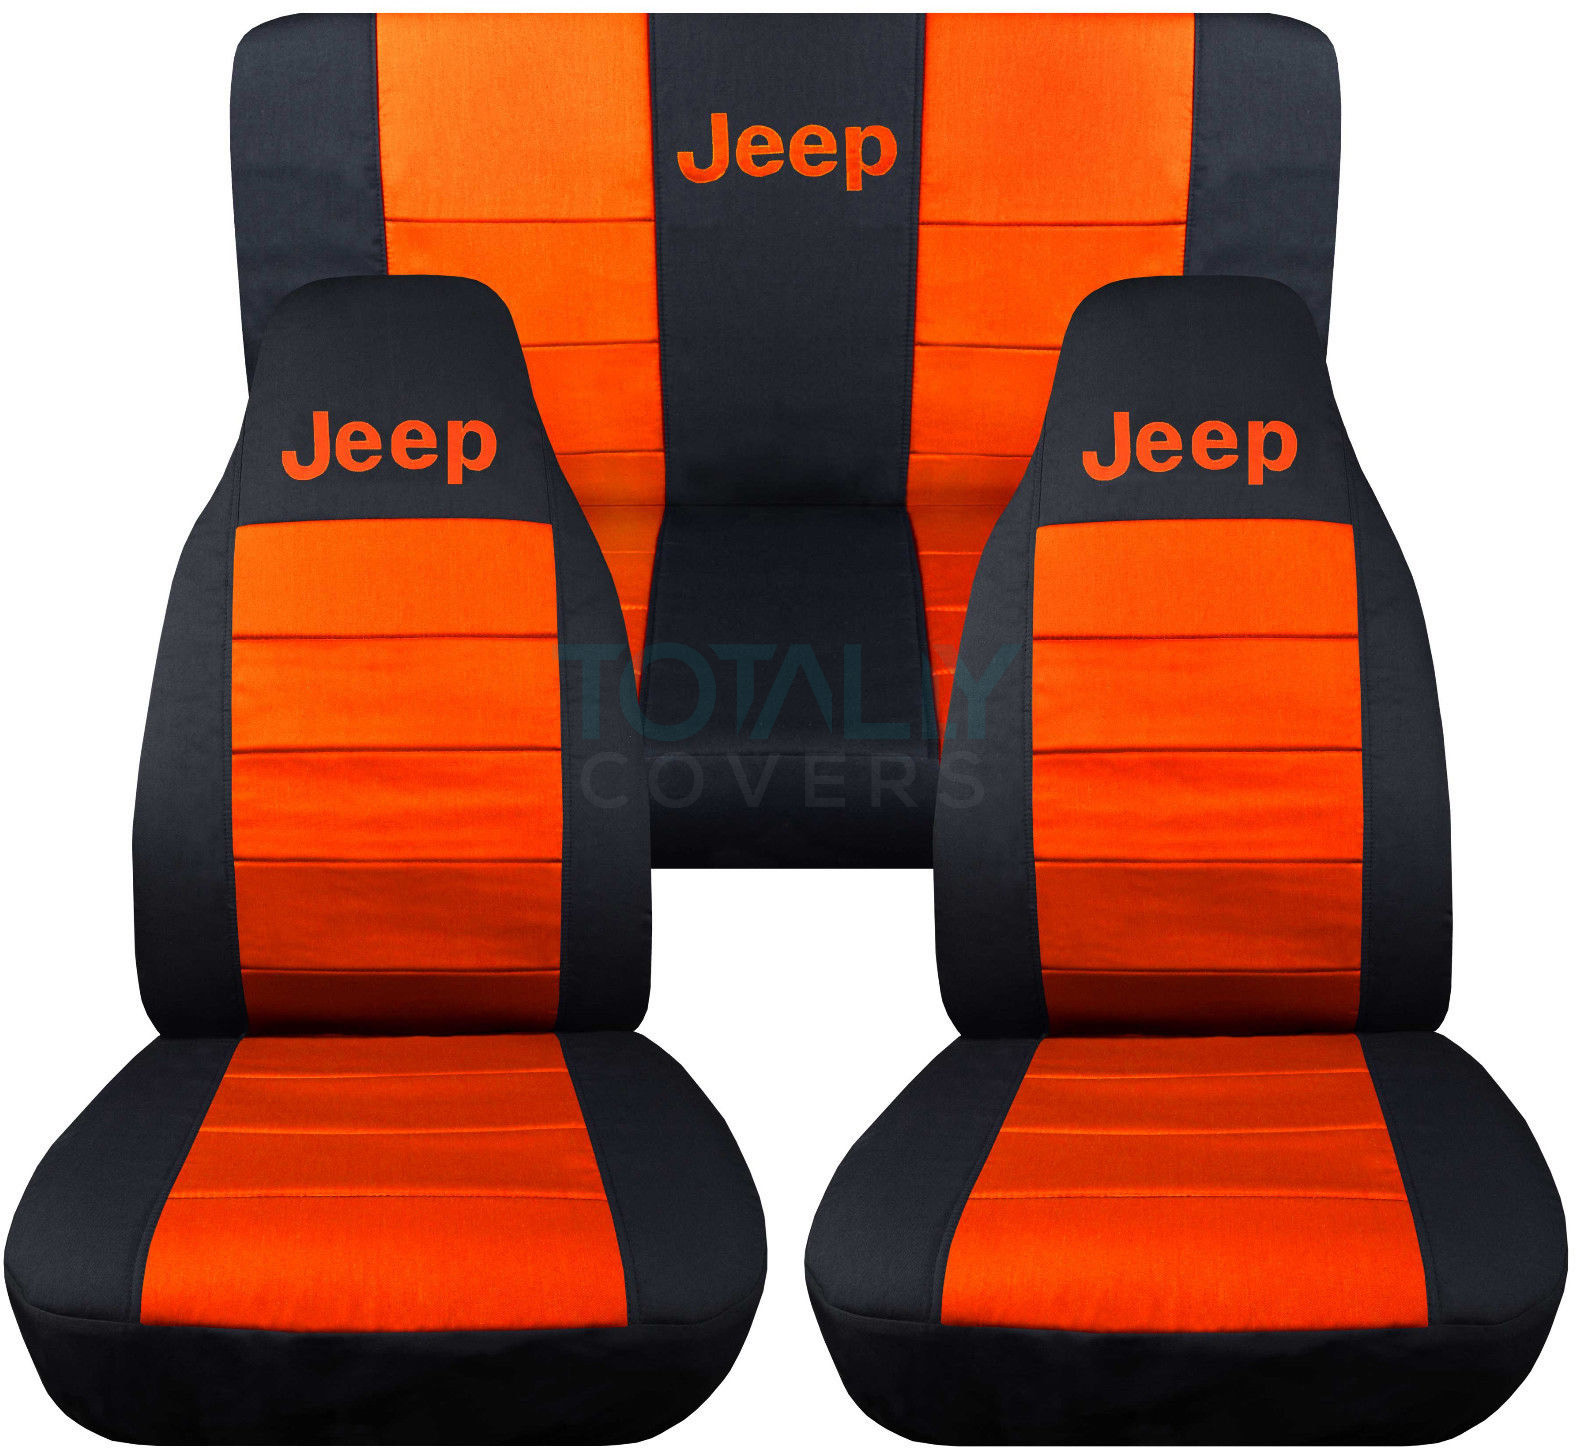 Jeep Wrangler Black And Orange Logo Seat Covers